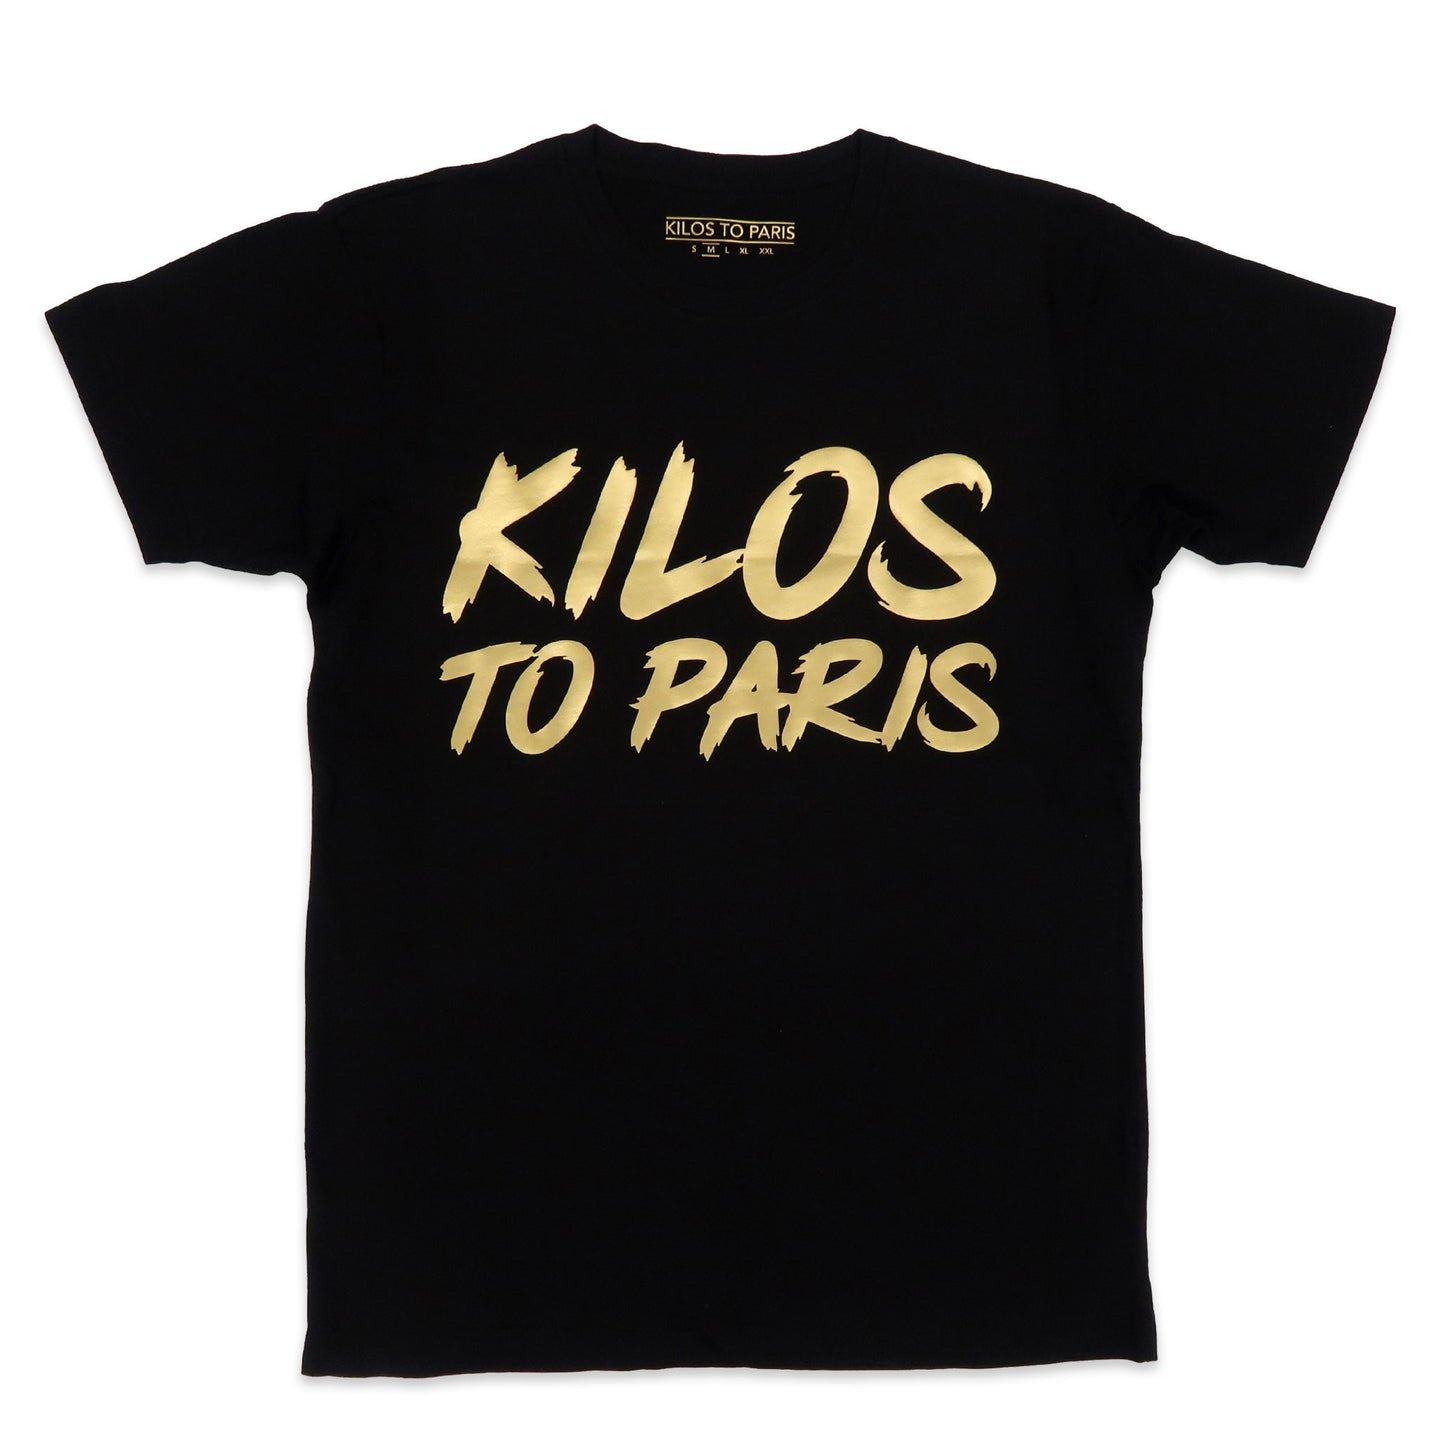 Kilos To Paris Tee in Black and Gold